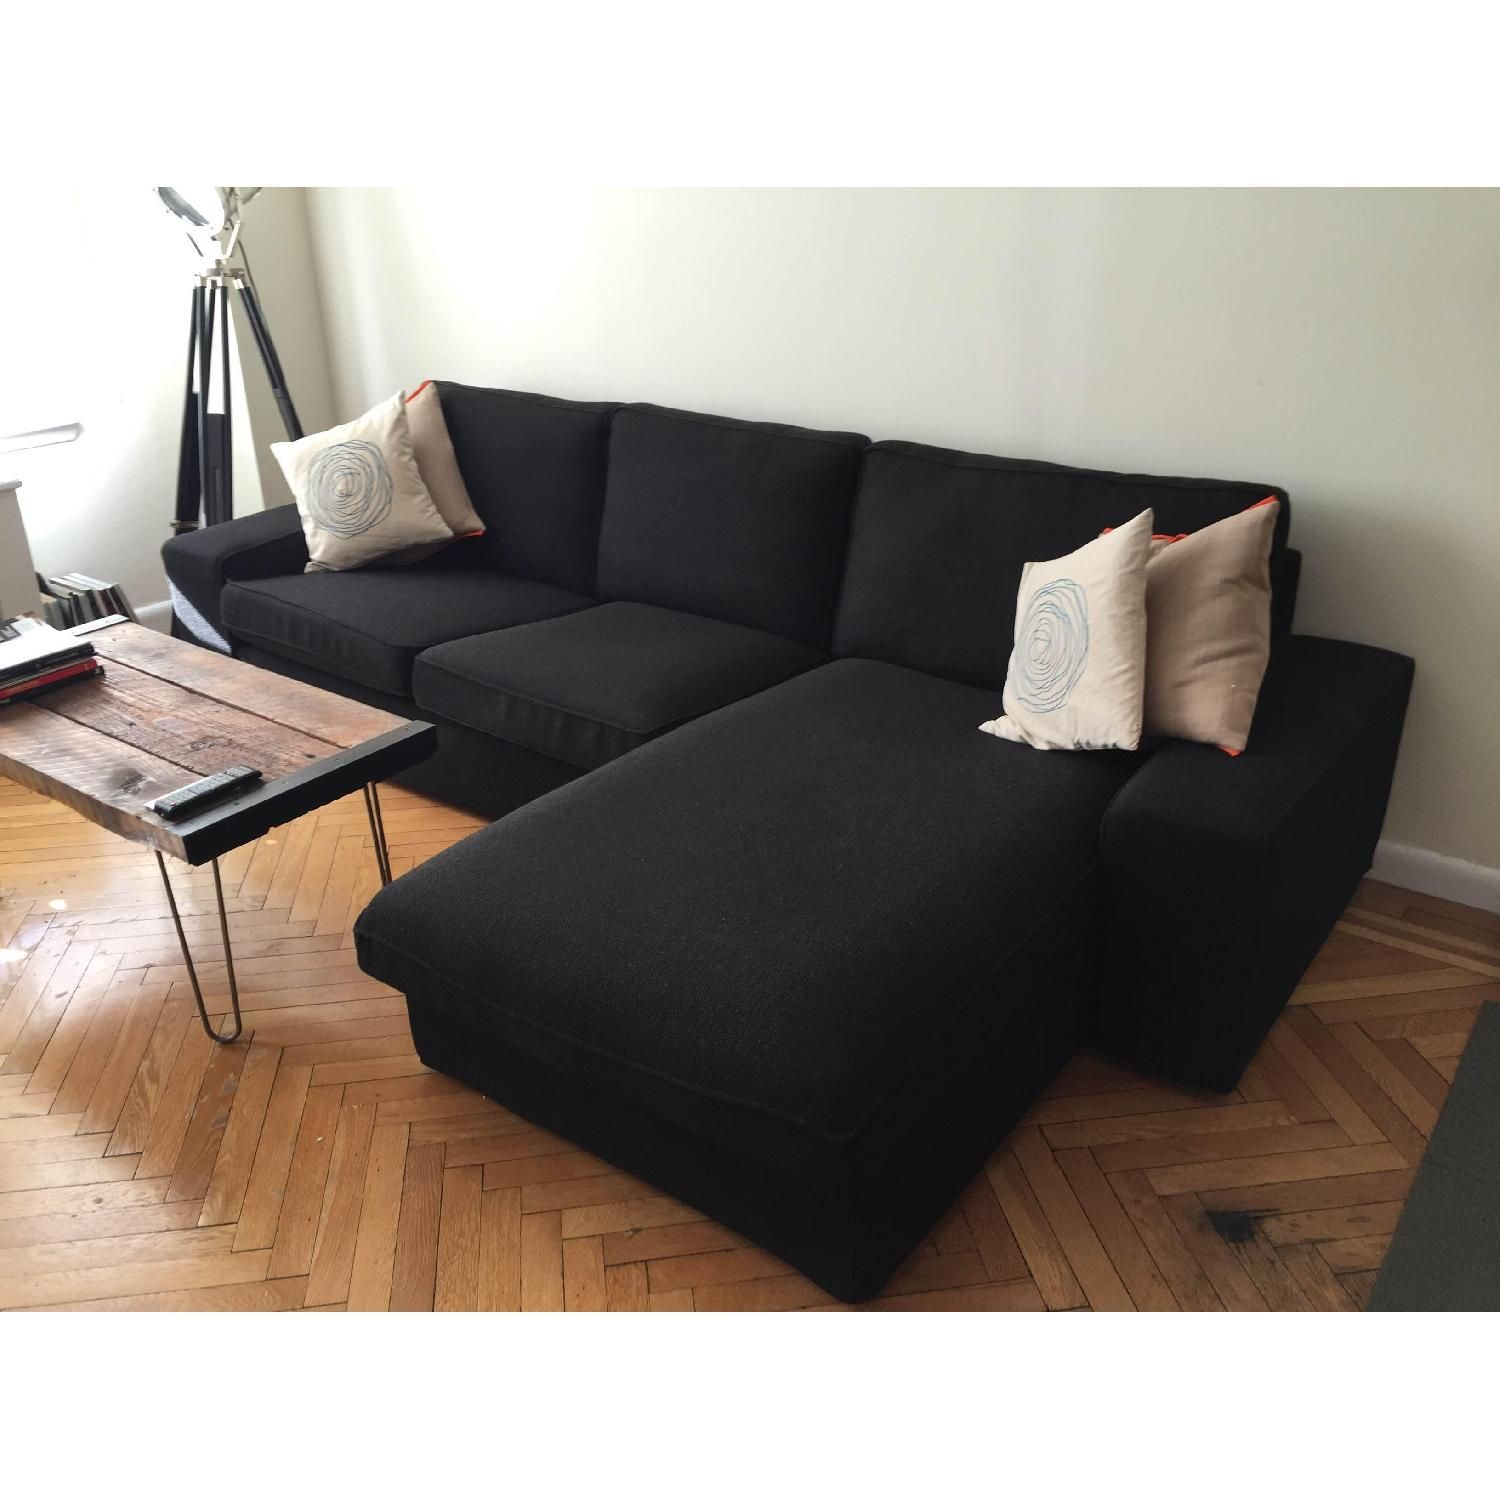 Ikea Kivik Loveseat and Chaise Lounge | Apartment furniture ...